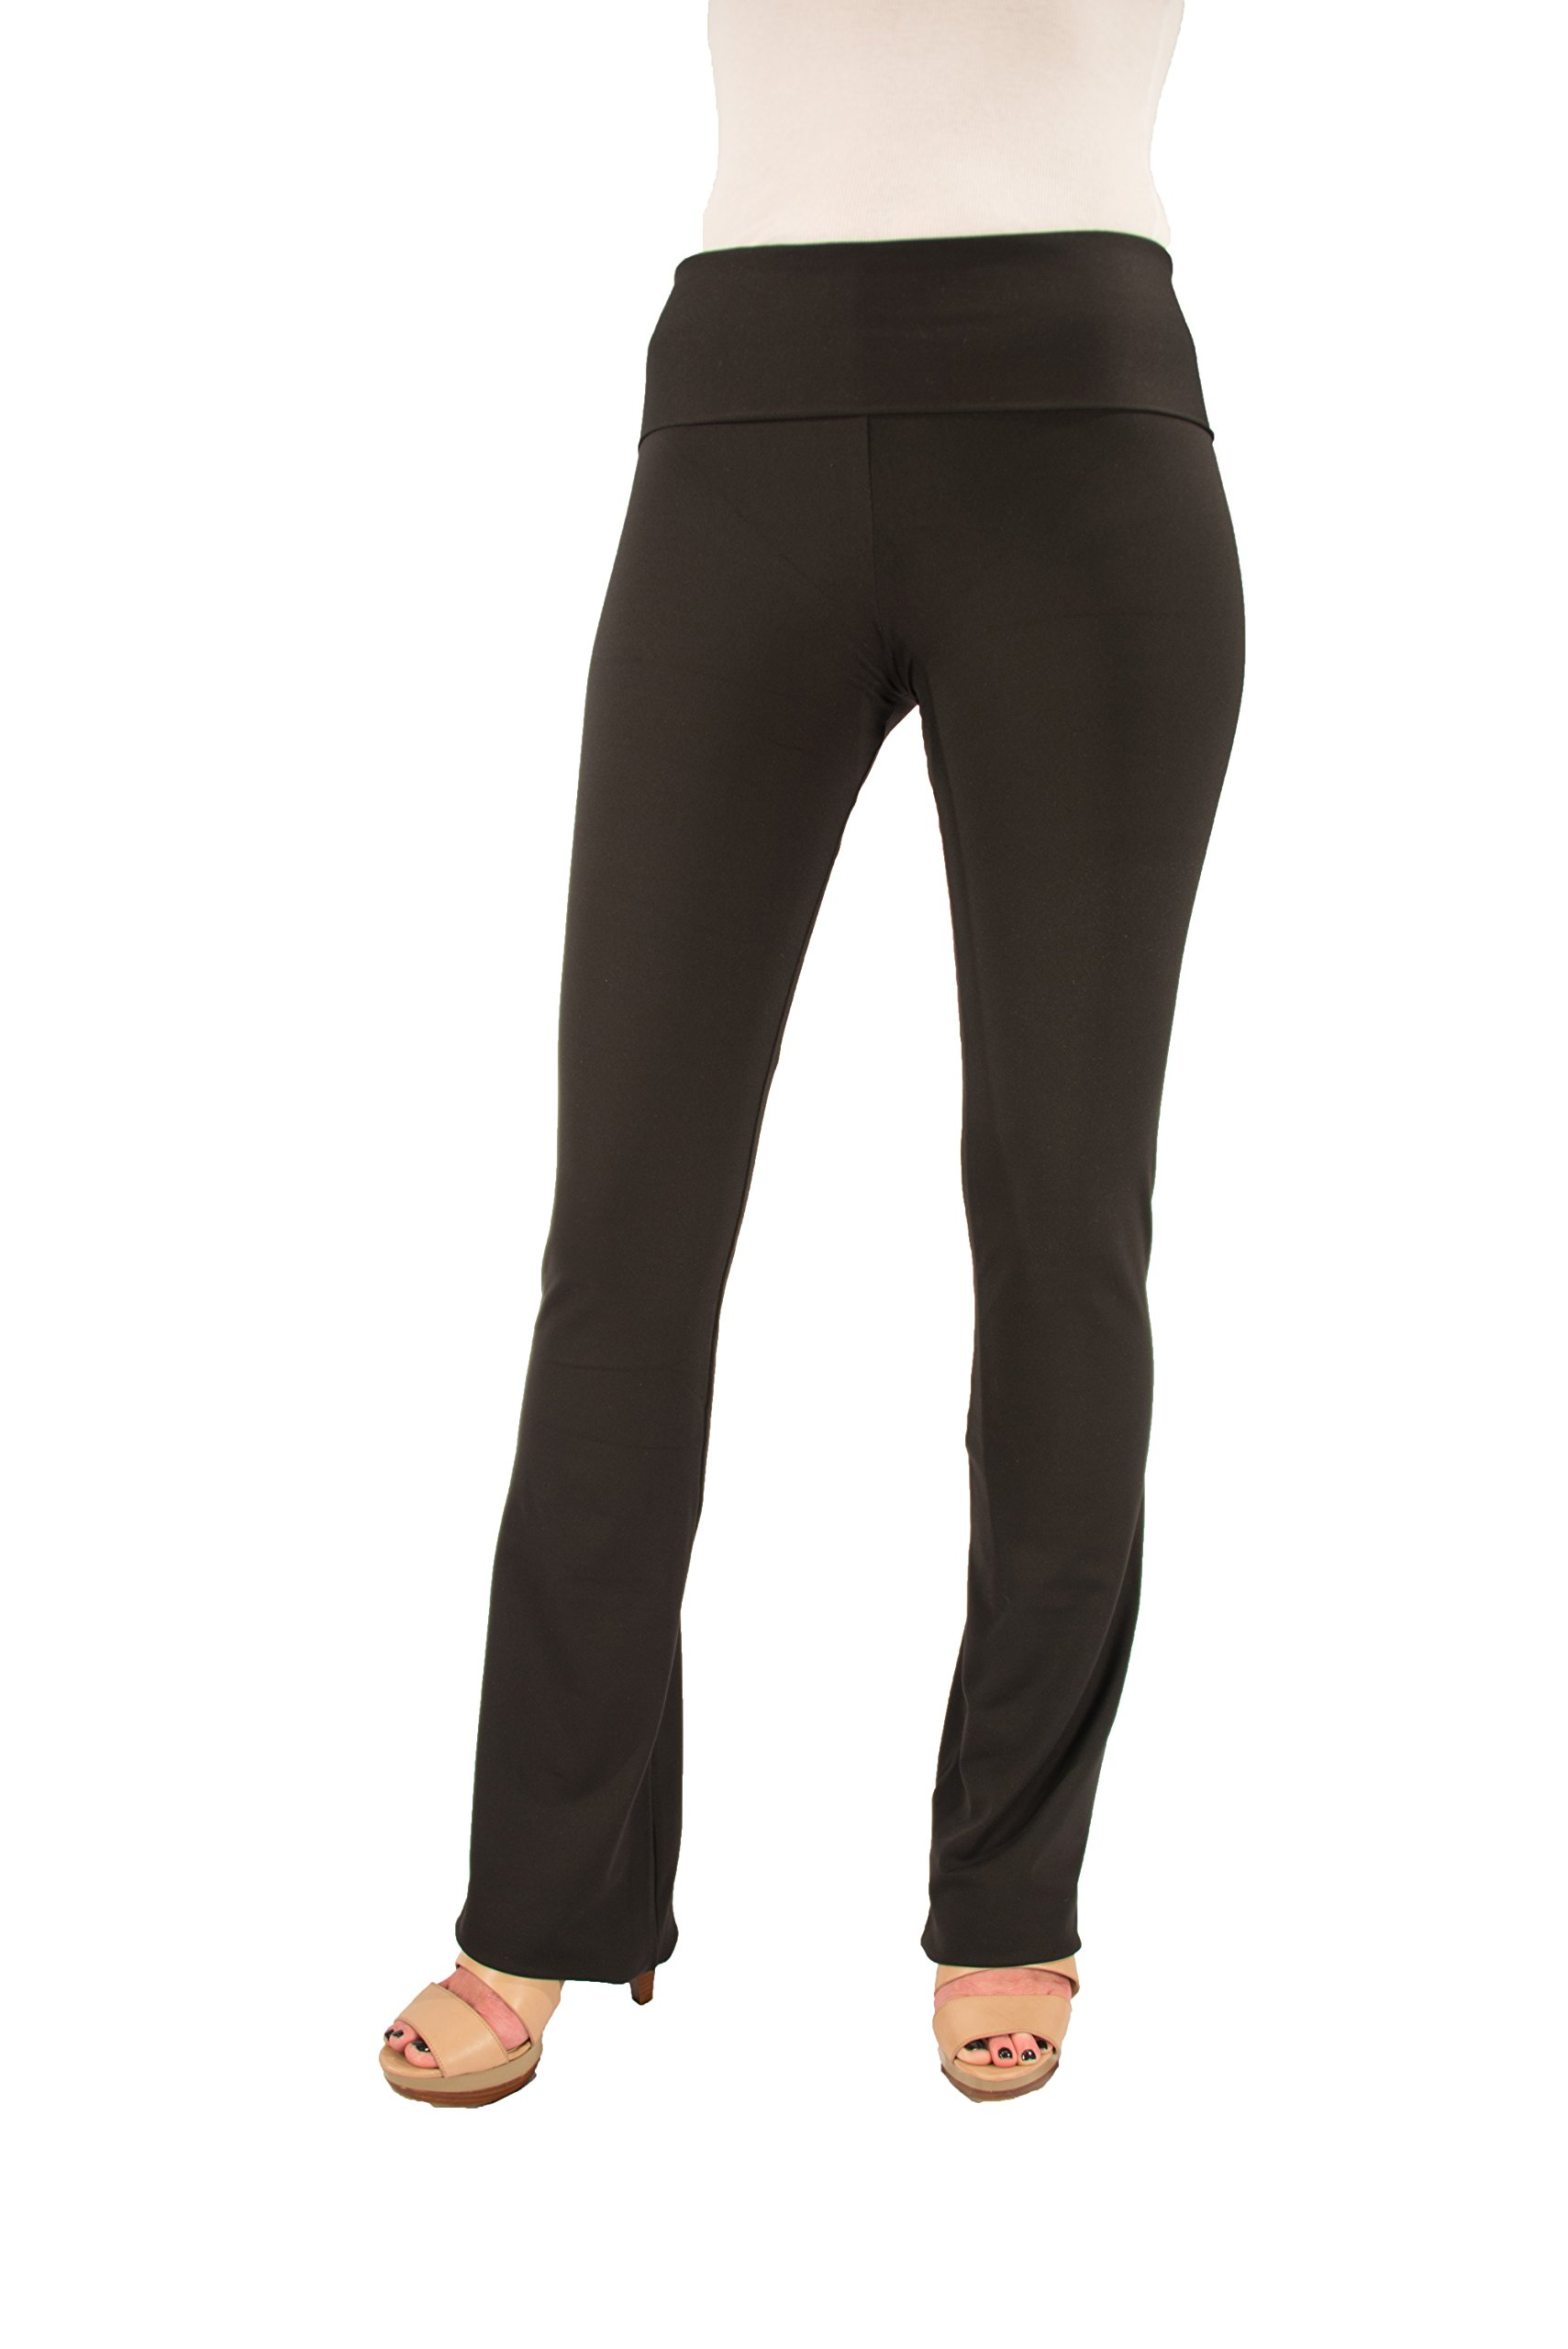 Hold Your Haunches ''As Seen on Shark Tank'' Women's Booty Patootie Bootcut Pants -L-Black-32''Inseam